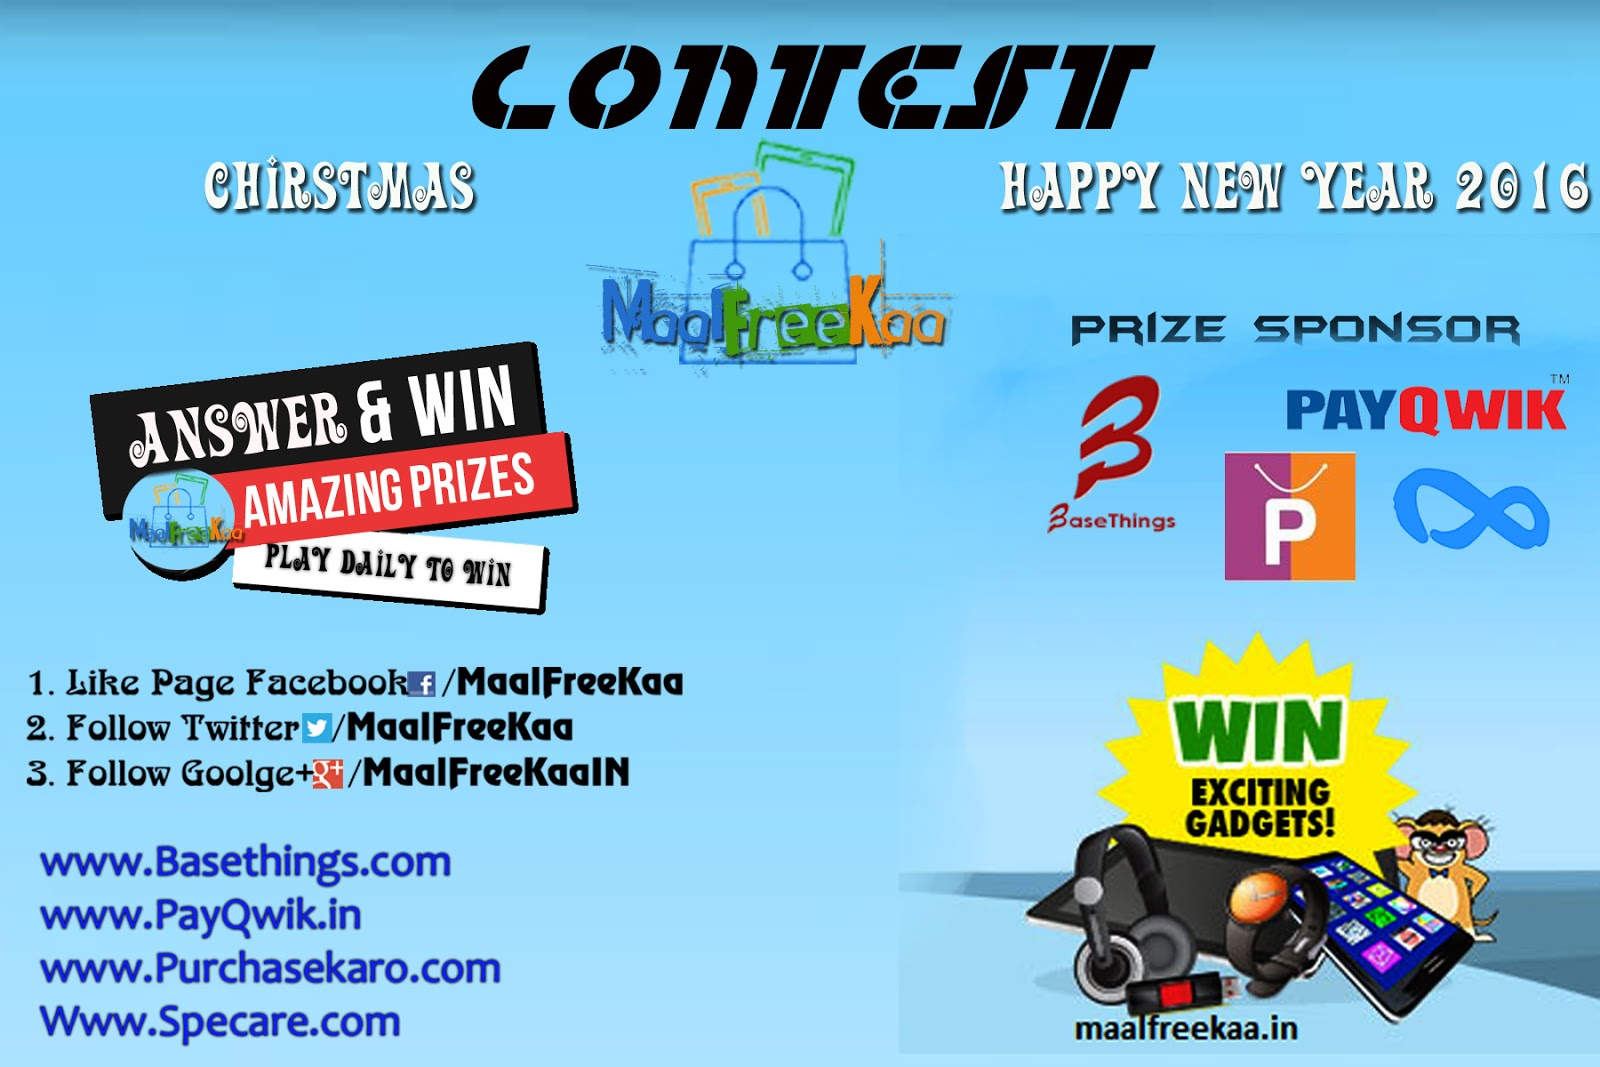 Interesting contests for the New Year 89